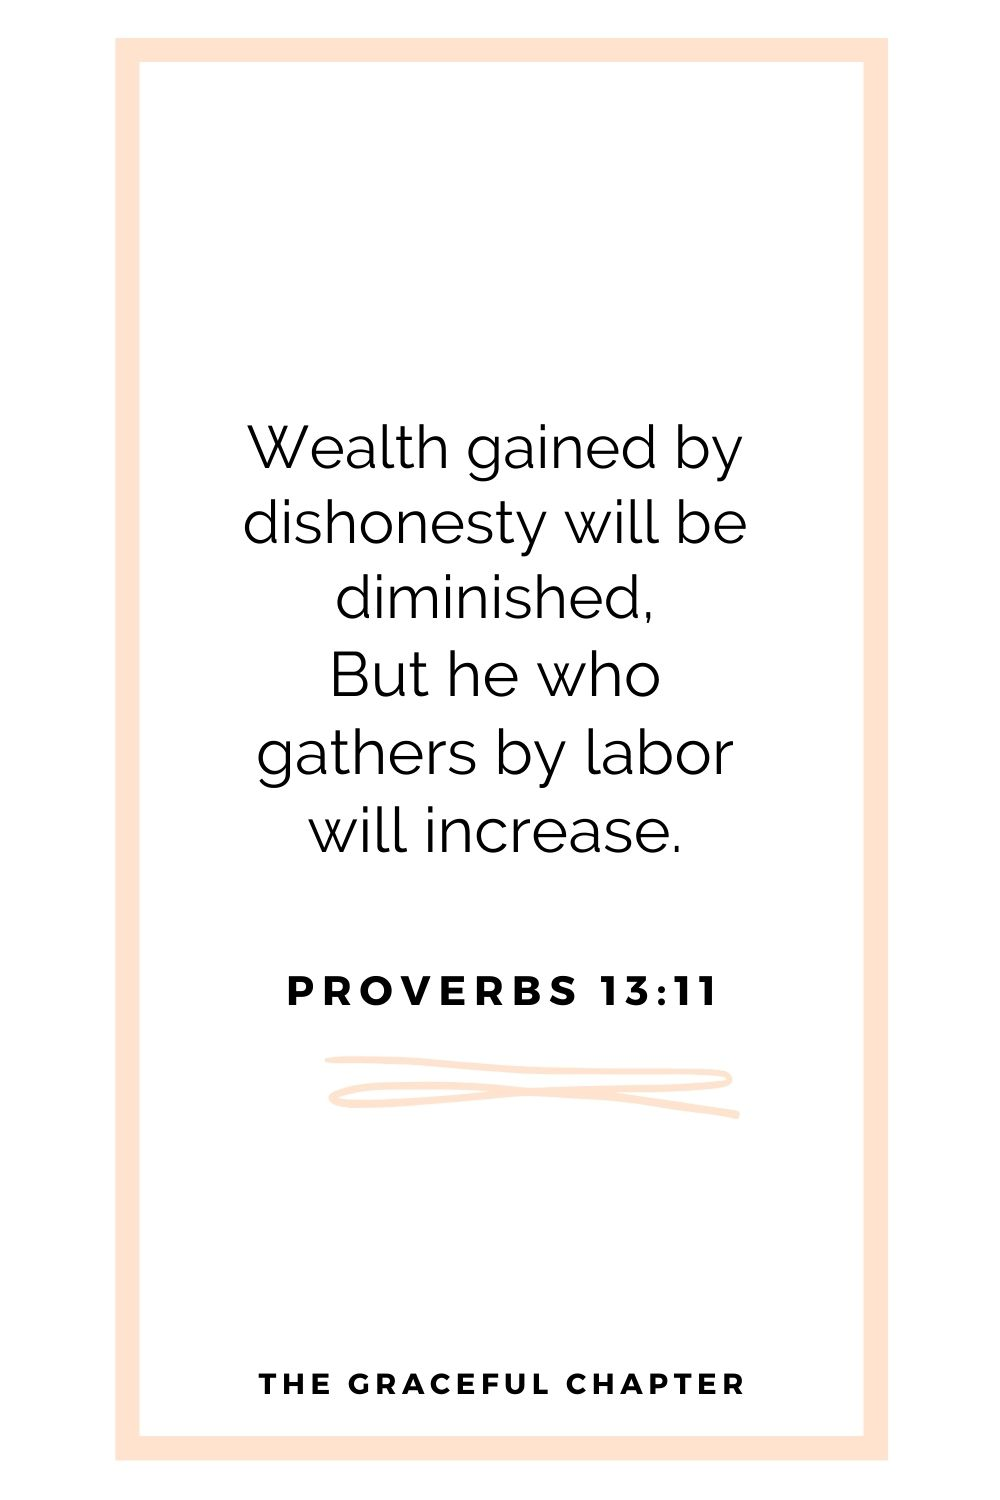 Wealth gained by dishonesty will be diminished, But he who gathers by labor will increase. Proverbs 13:11